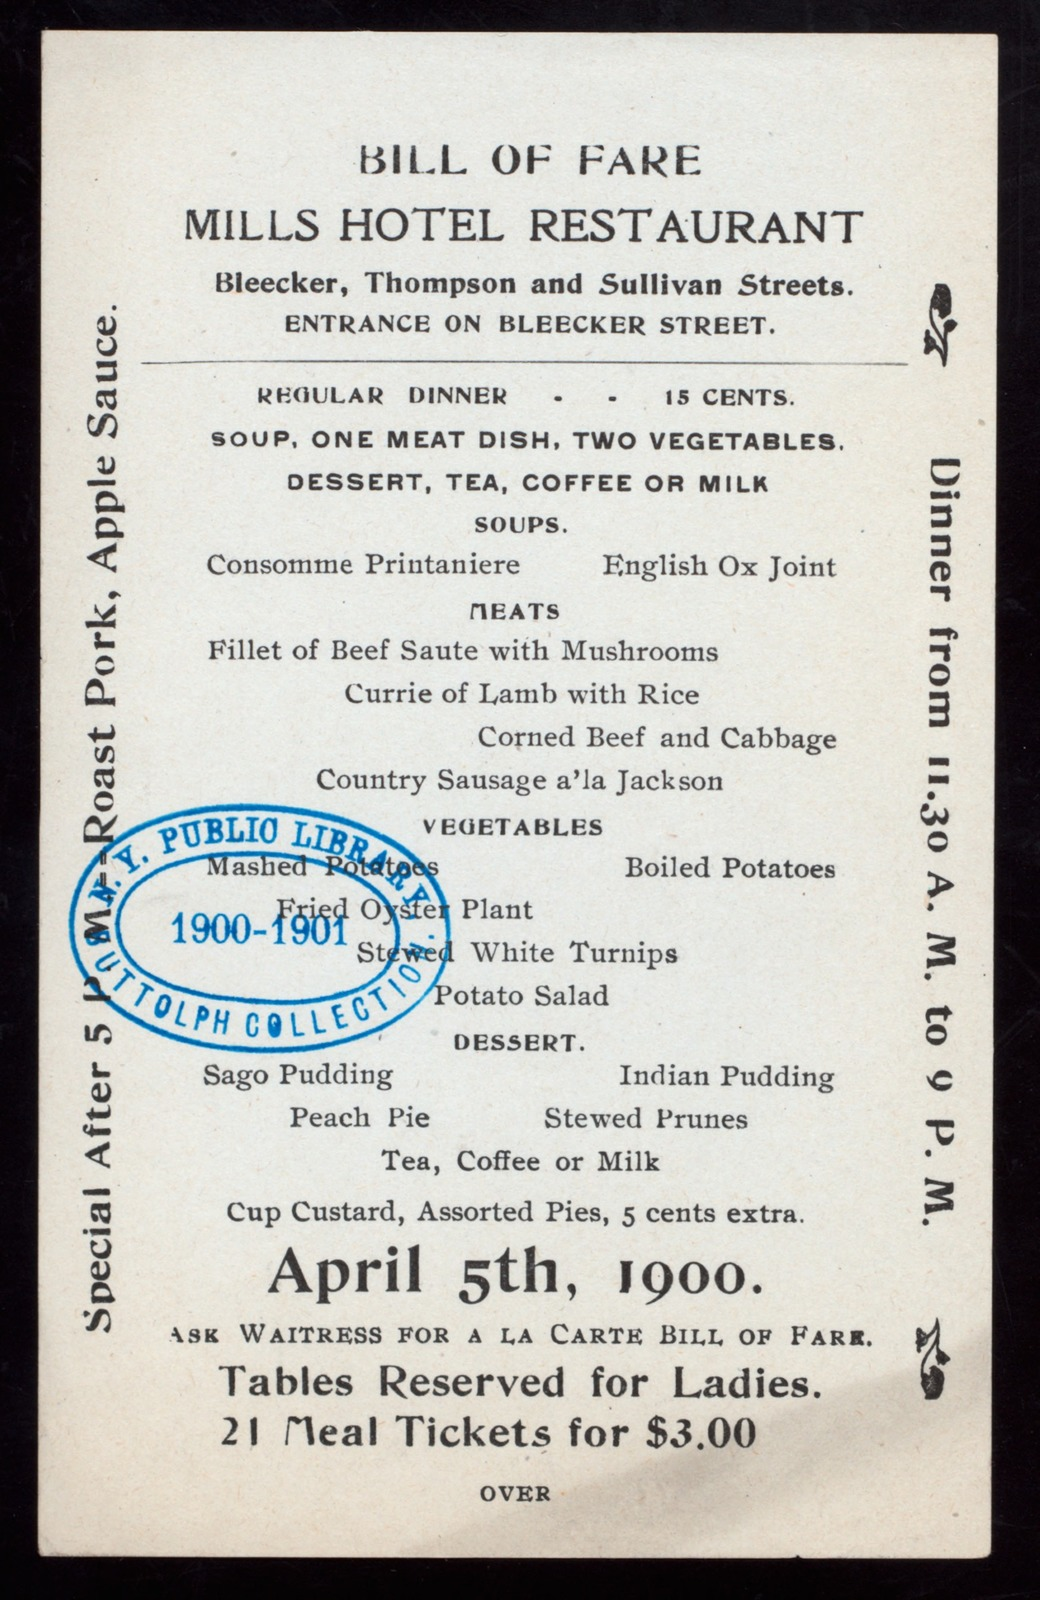 """DINNER [held by] MILLS HOTEL RESTAURANT [at] """"BLEECKER,THOMPSON,AND SULLIVAN STREETS,[NY]"""" (HOTEL;)"""